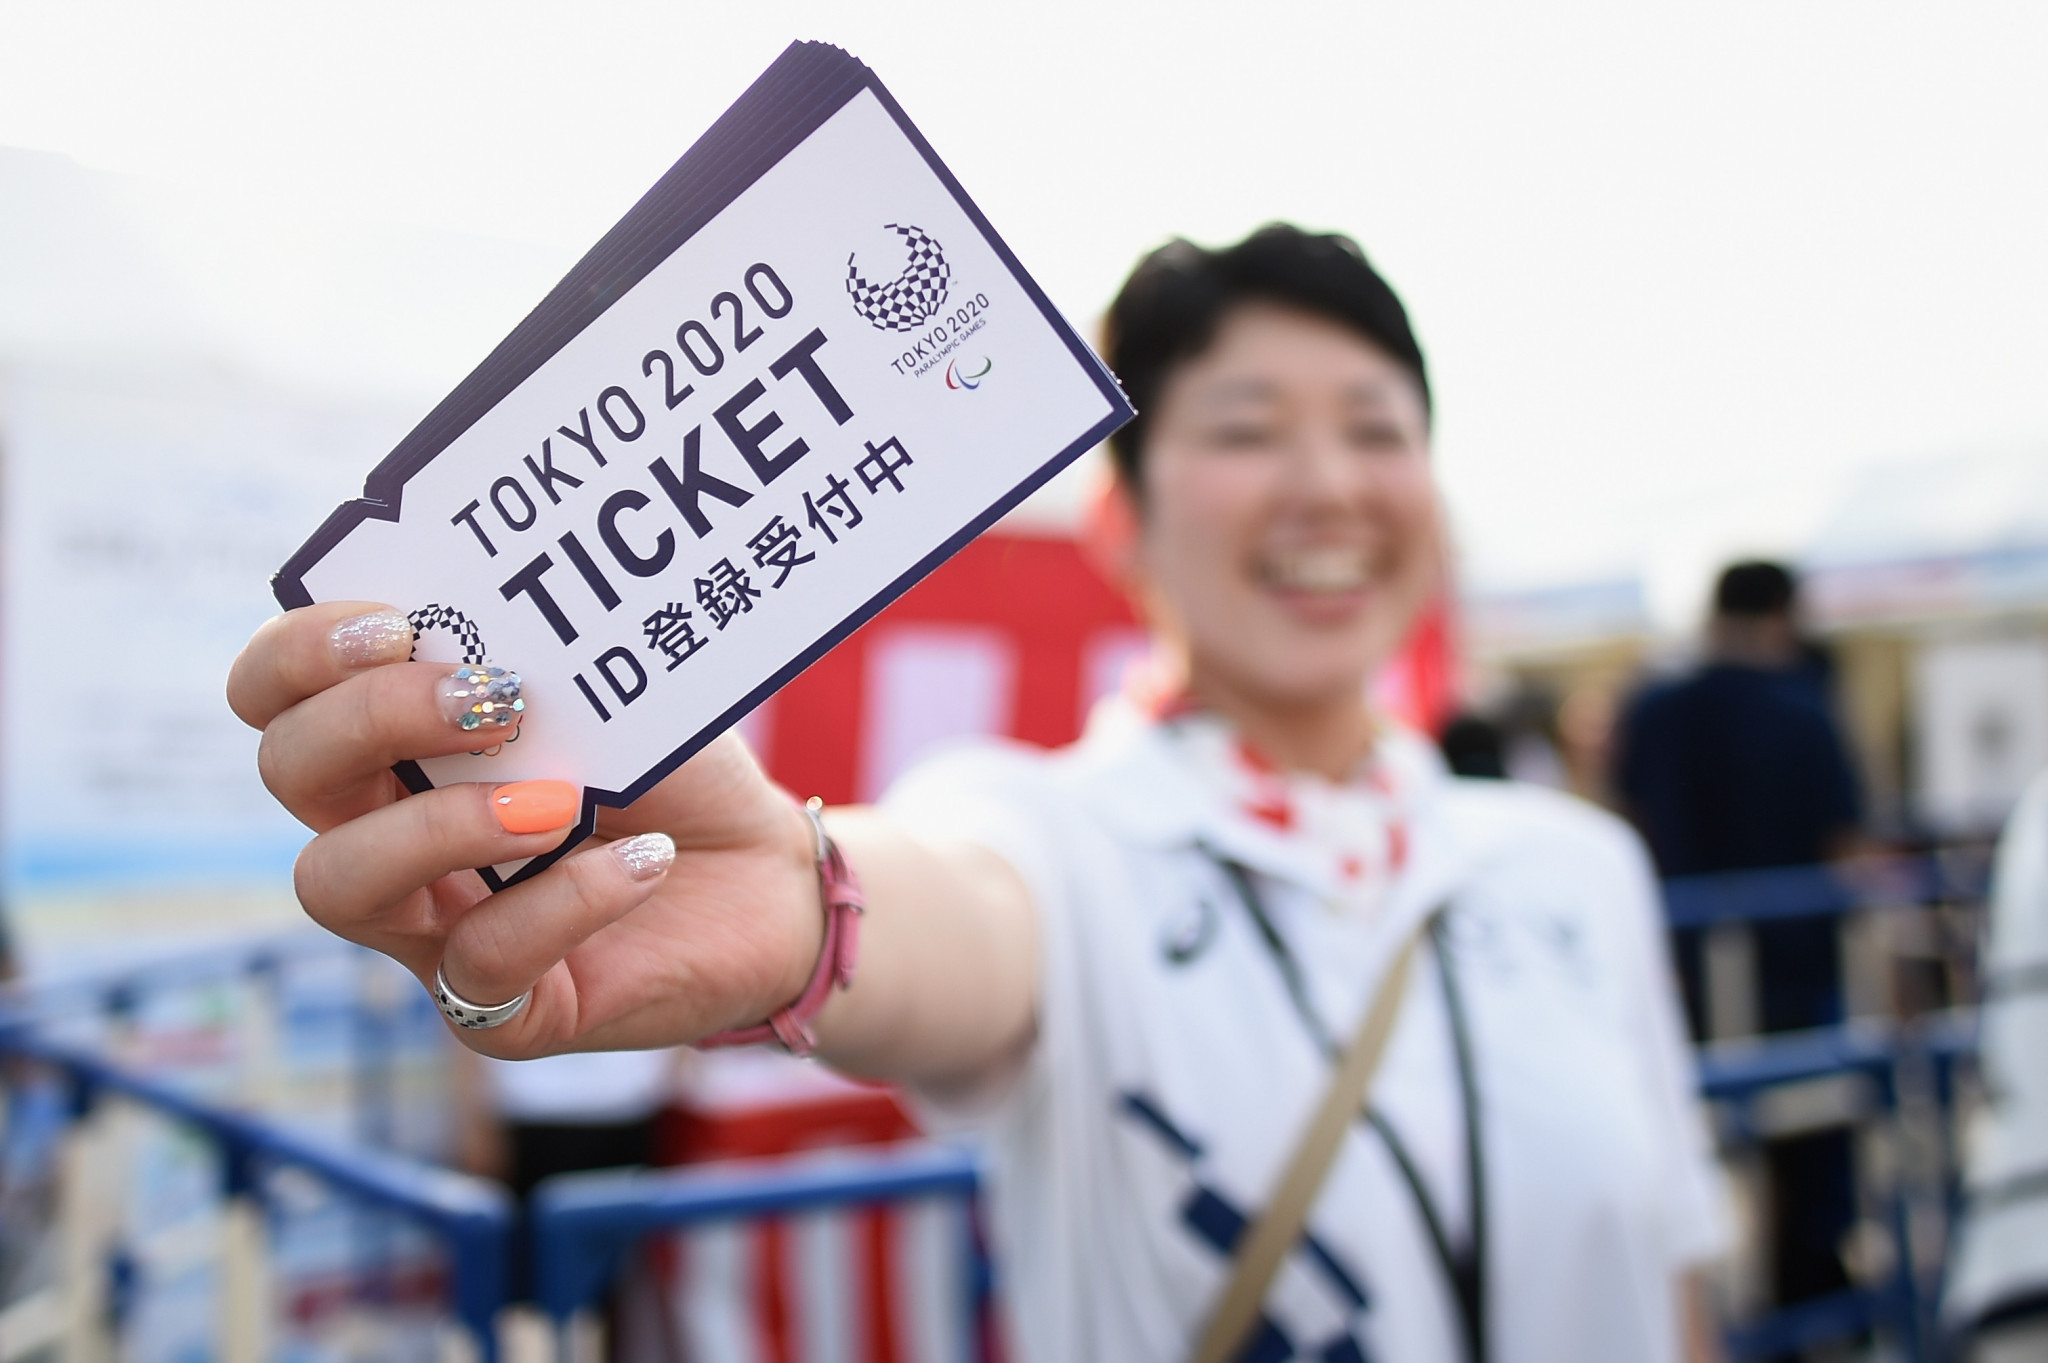 Tokyo 2020 welcomes Yahoo Japan Corporation as official supporter